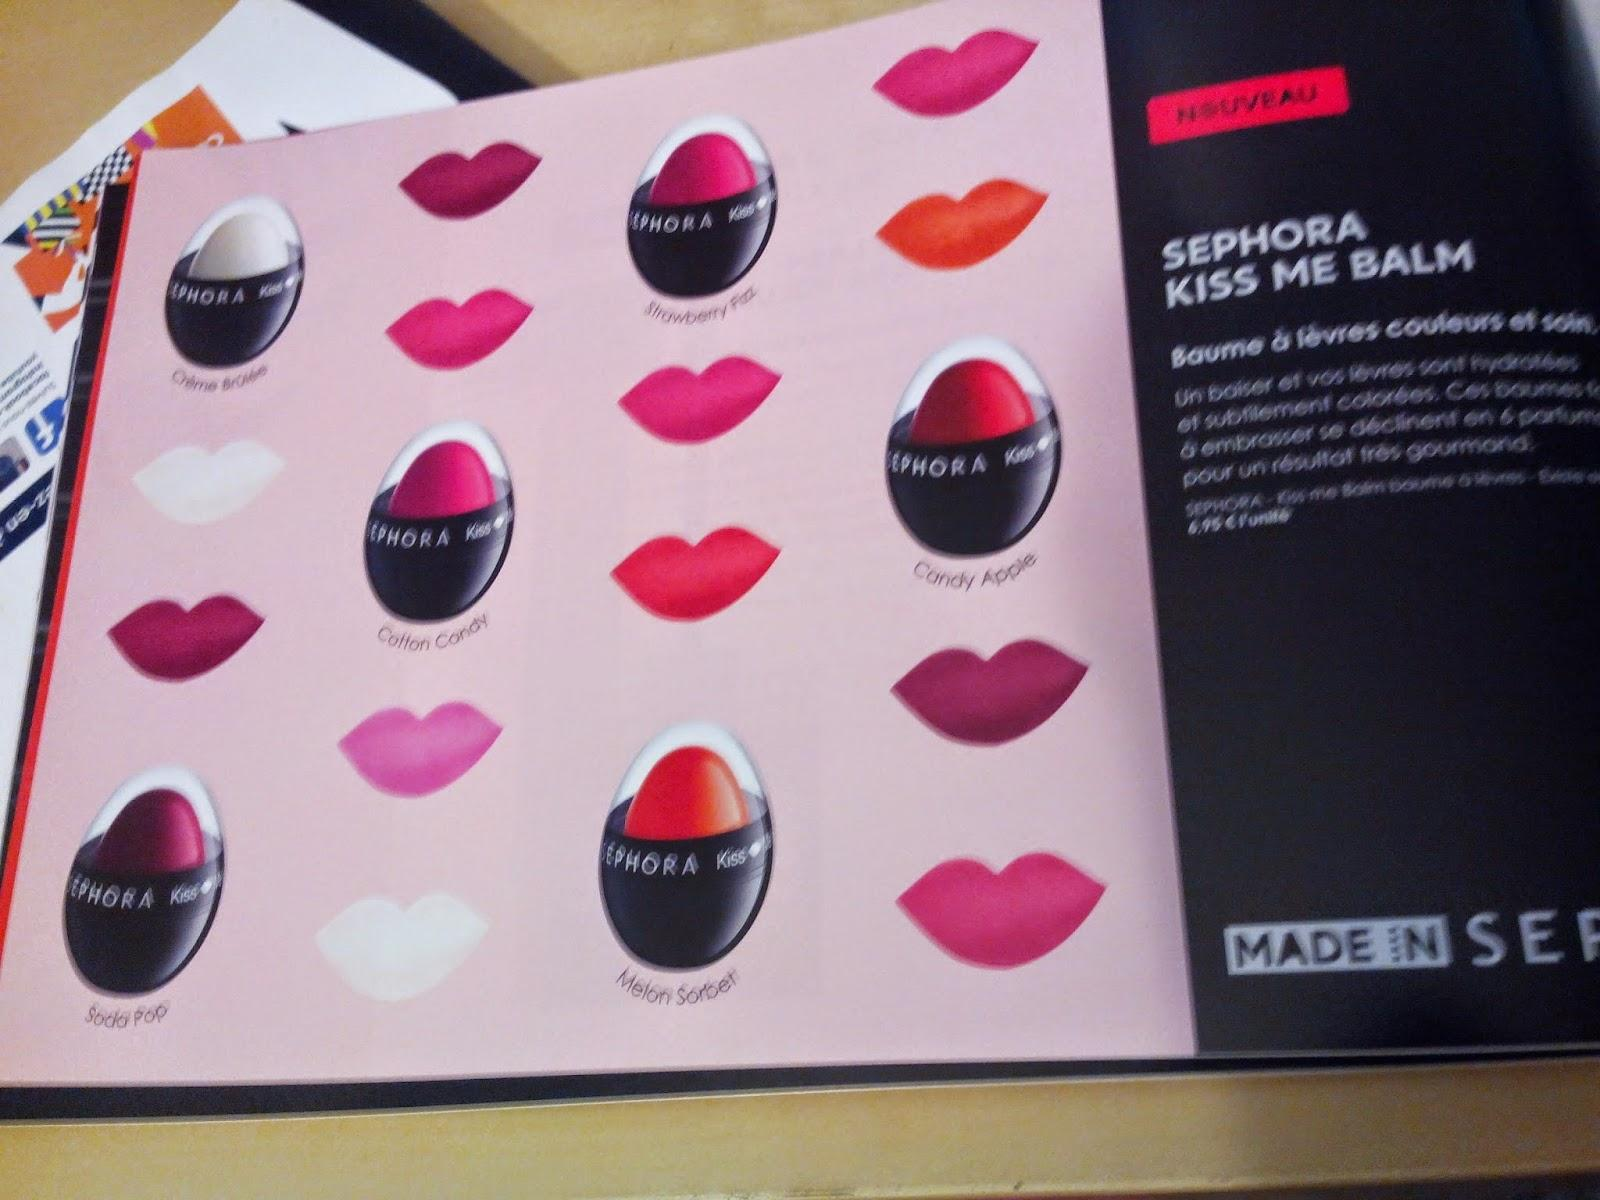 Ma wish list chez Sephora